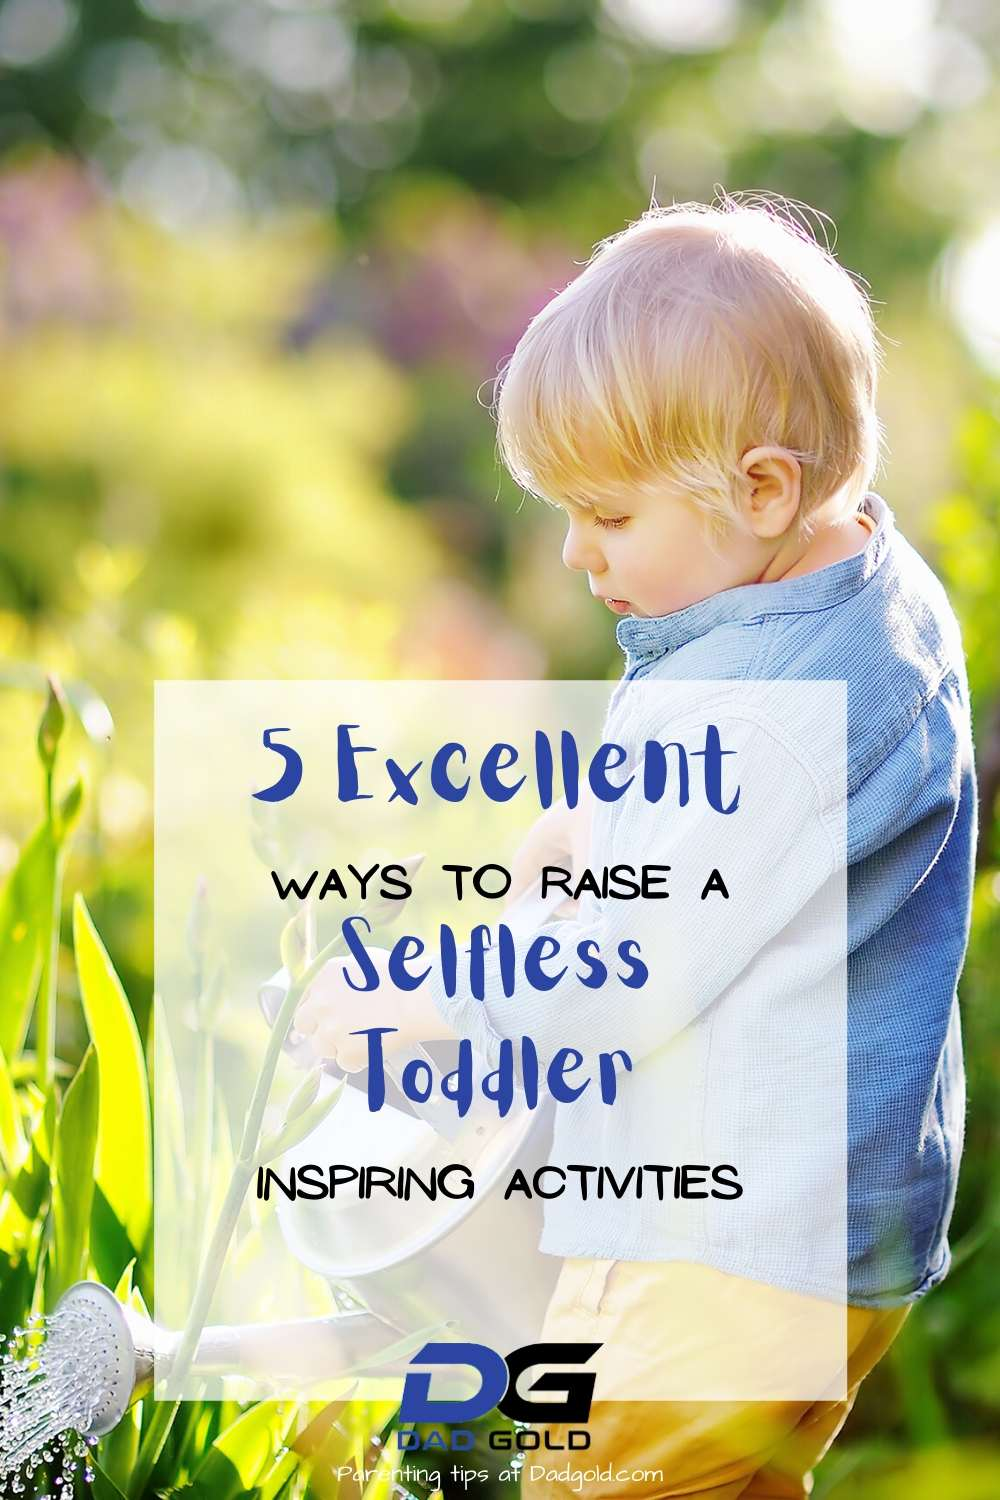 Teach Selflessness To Your Toddler